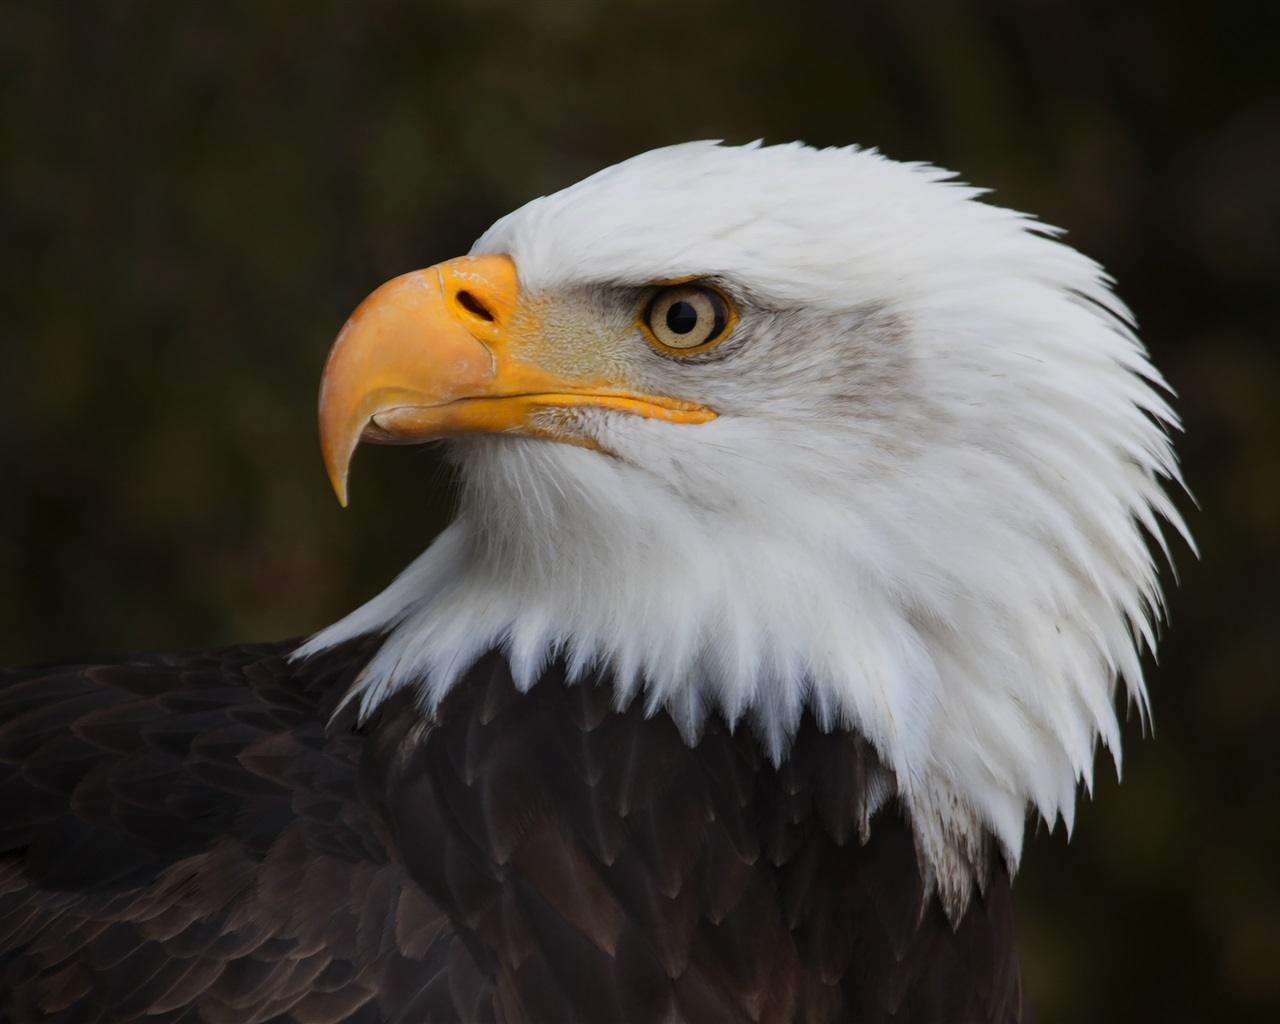 eagle 1280x1024 wallpaper - photo #4